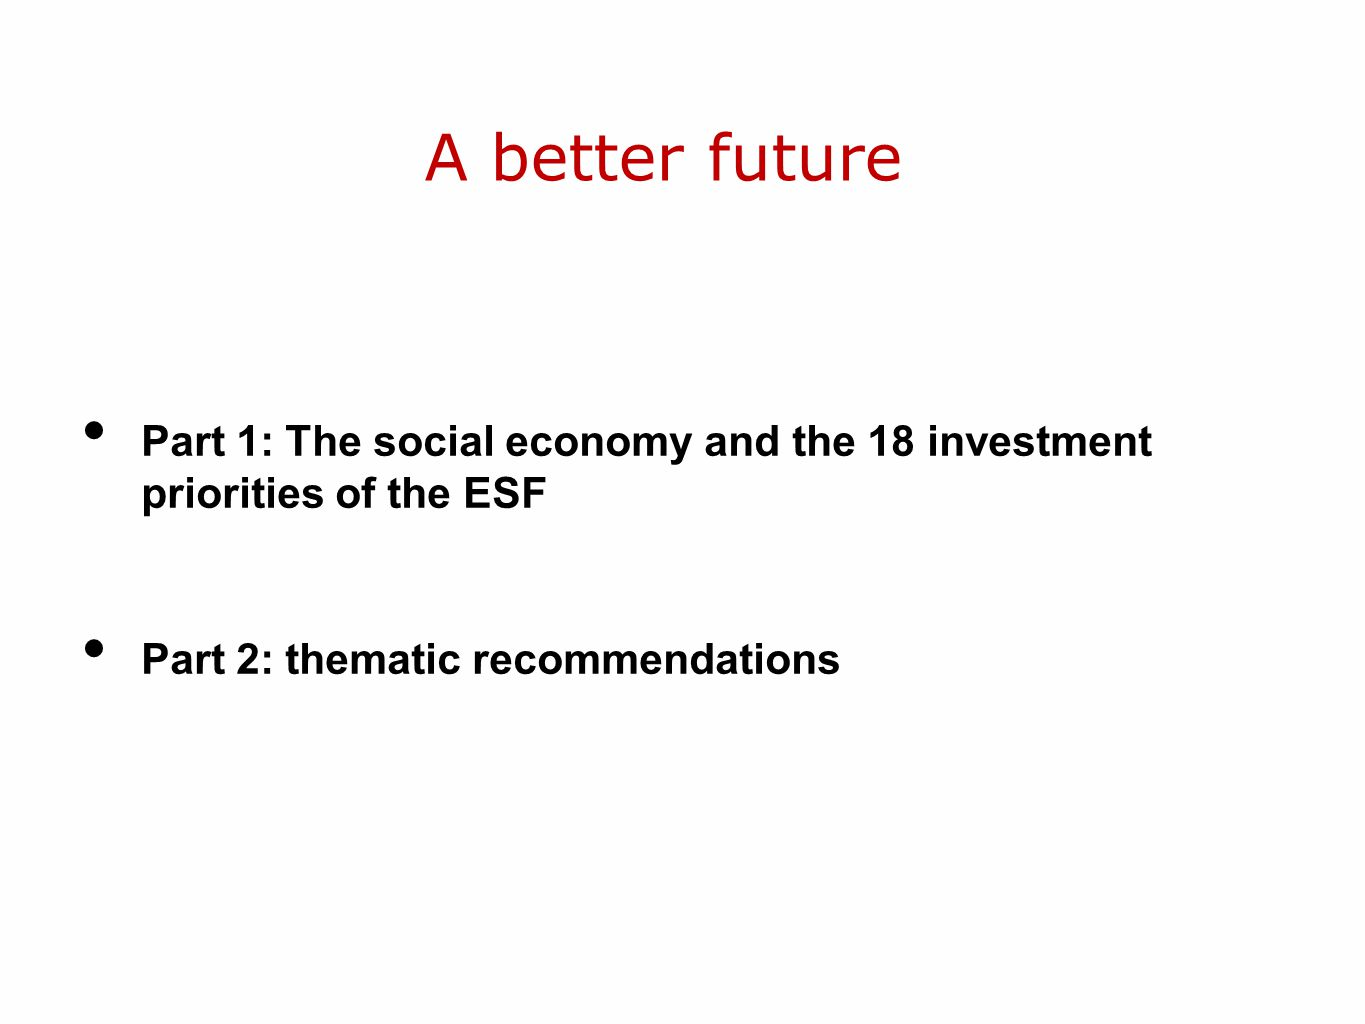 A better future Part 1: The social economy and the 18 investment priorities of the ESF Part 2: thematic recommendations